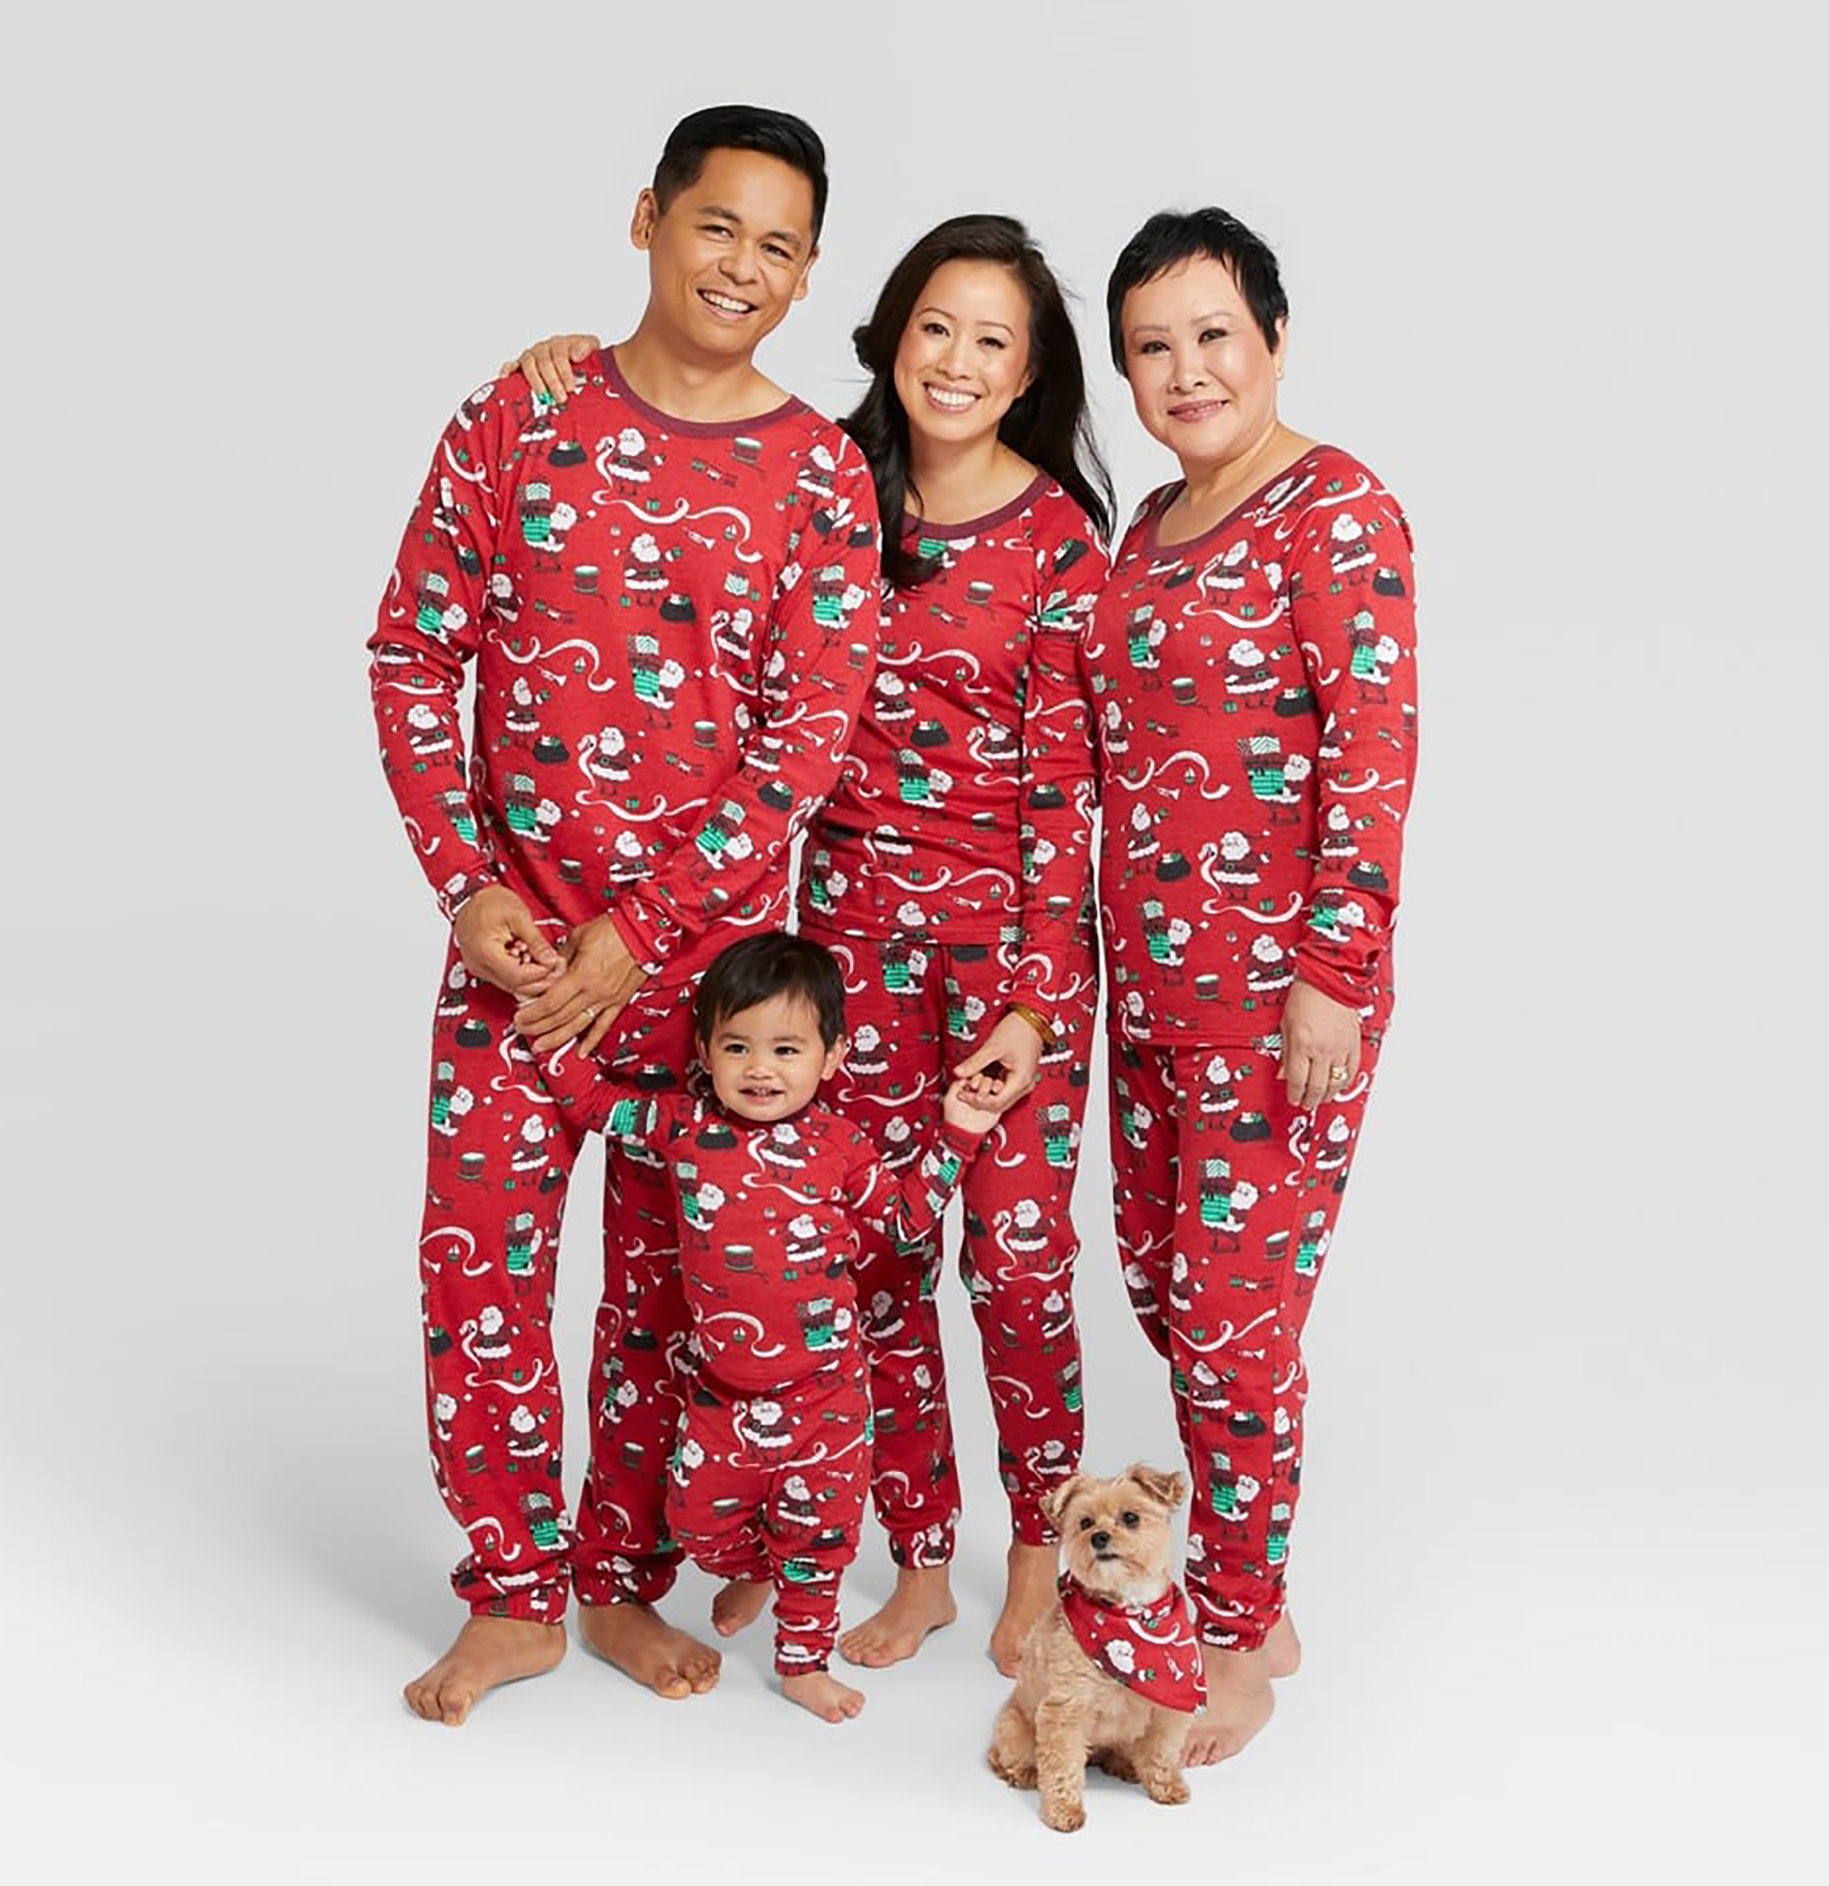 Best Matching Family Christmas Pajamas for 2018 - Family Holiday Pajamas 08a7de6af